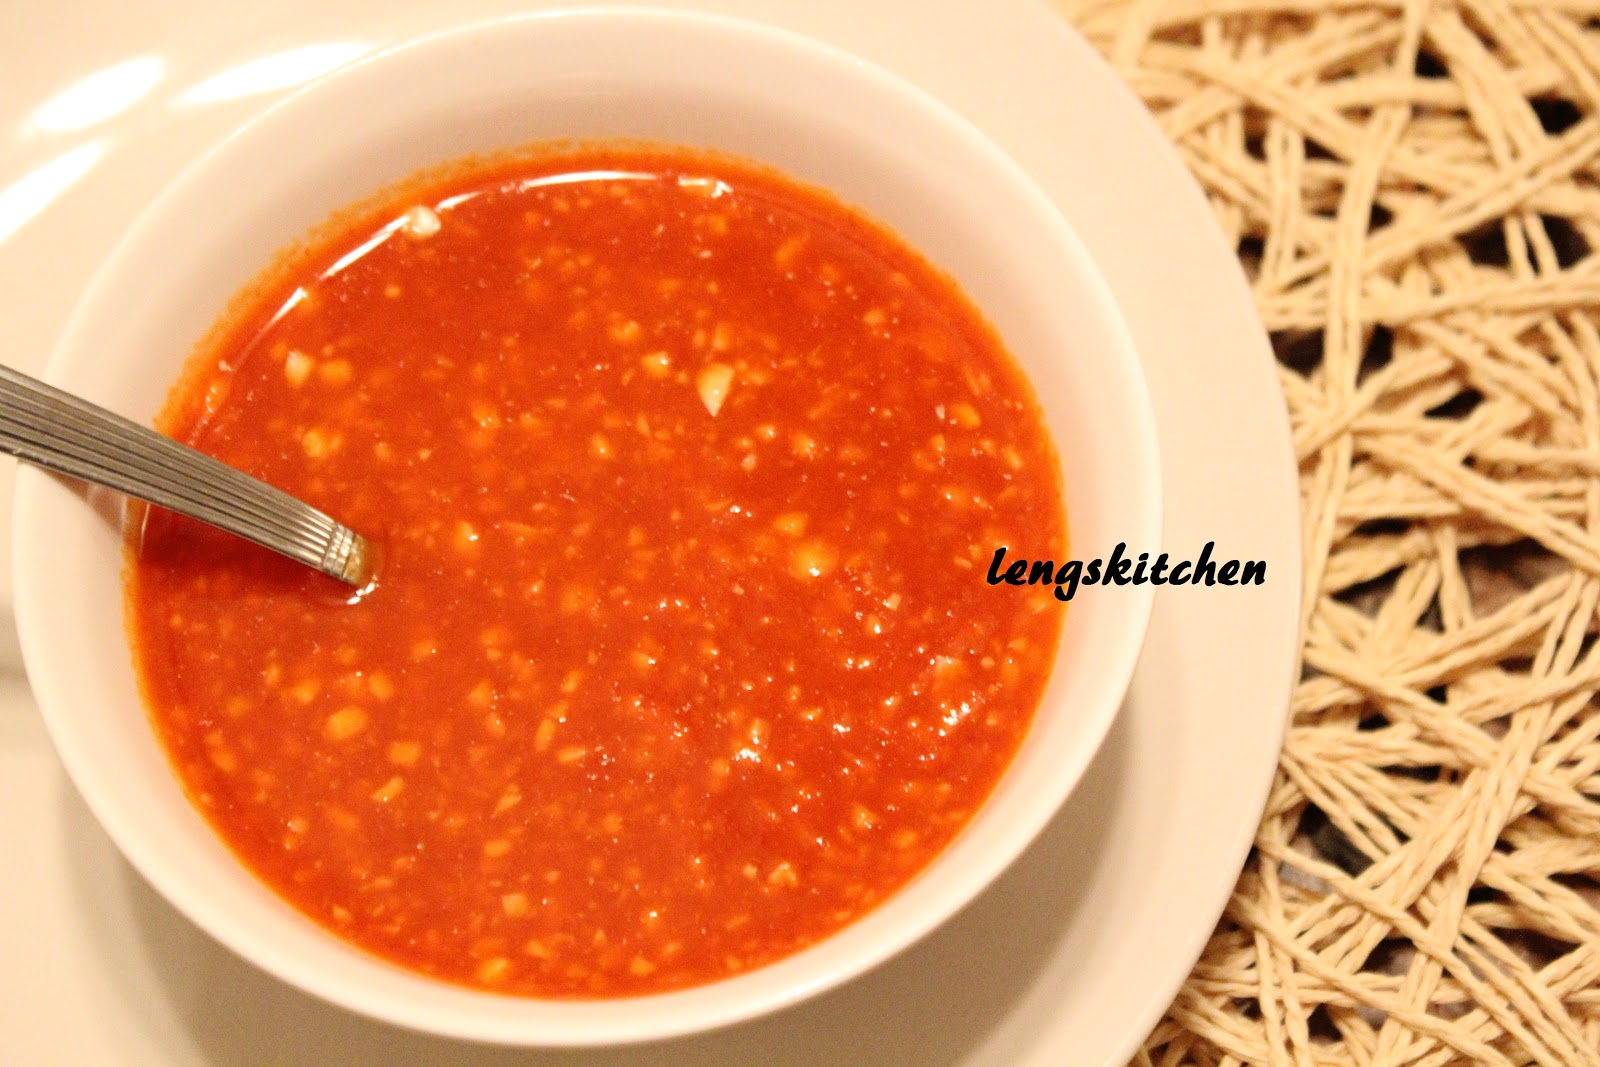 Kitchen Chaos Ginger And Garlic Chili Sauce 姜蒜辣椒酱